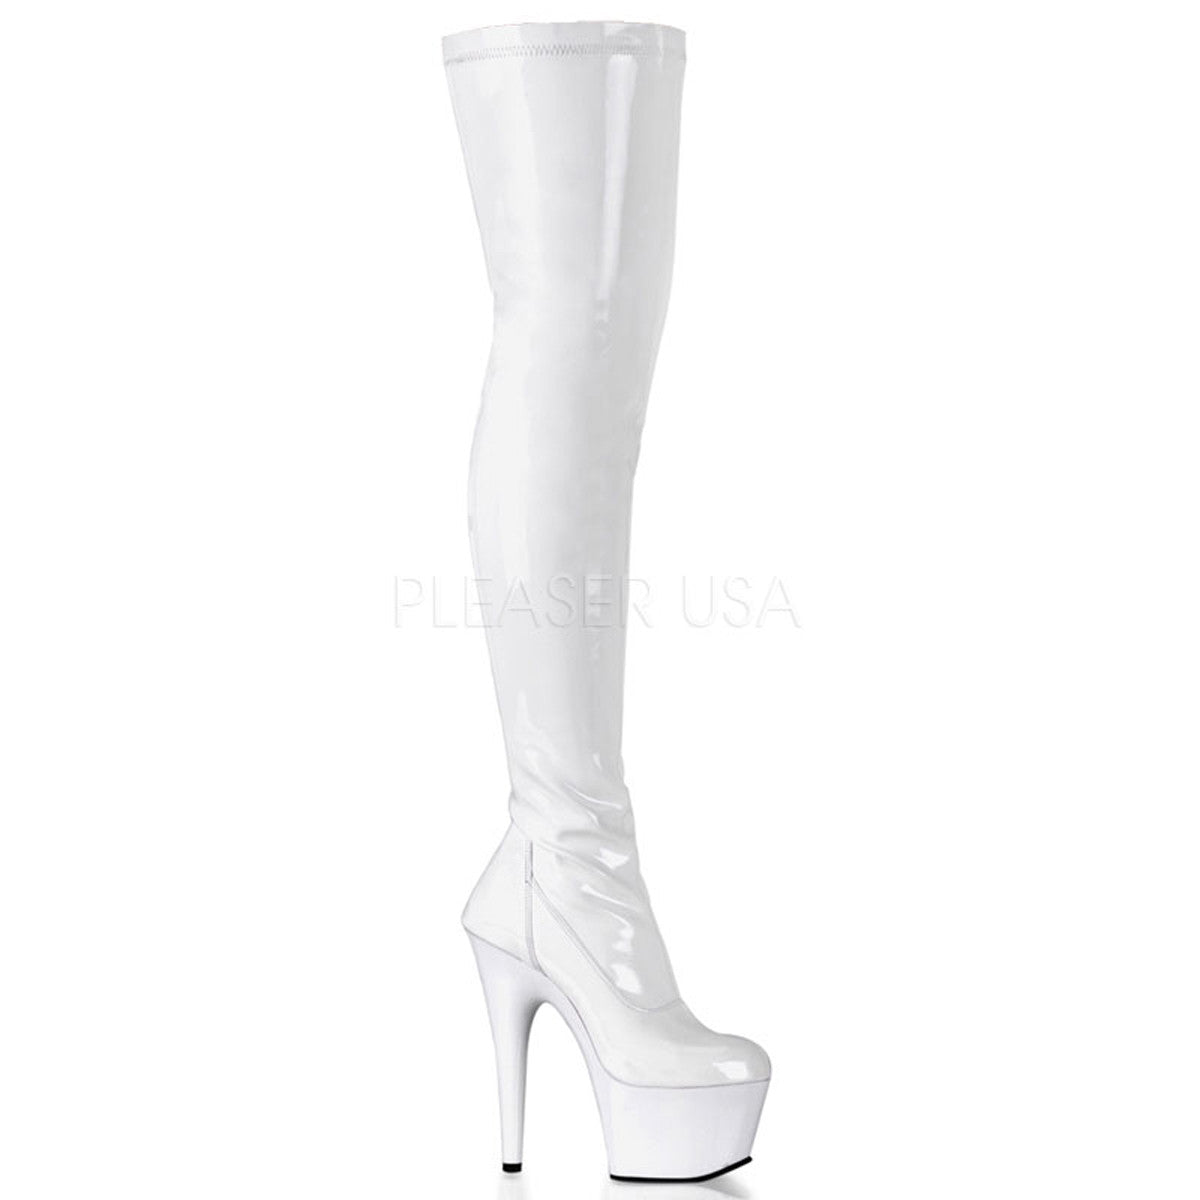 PLEASER ADORE-3000 White Stretch Pat Thigh High Boots - Shoecup.com - 1